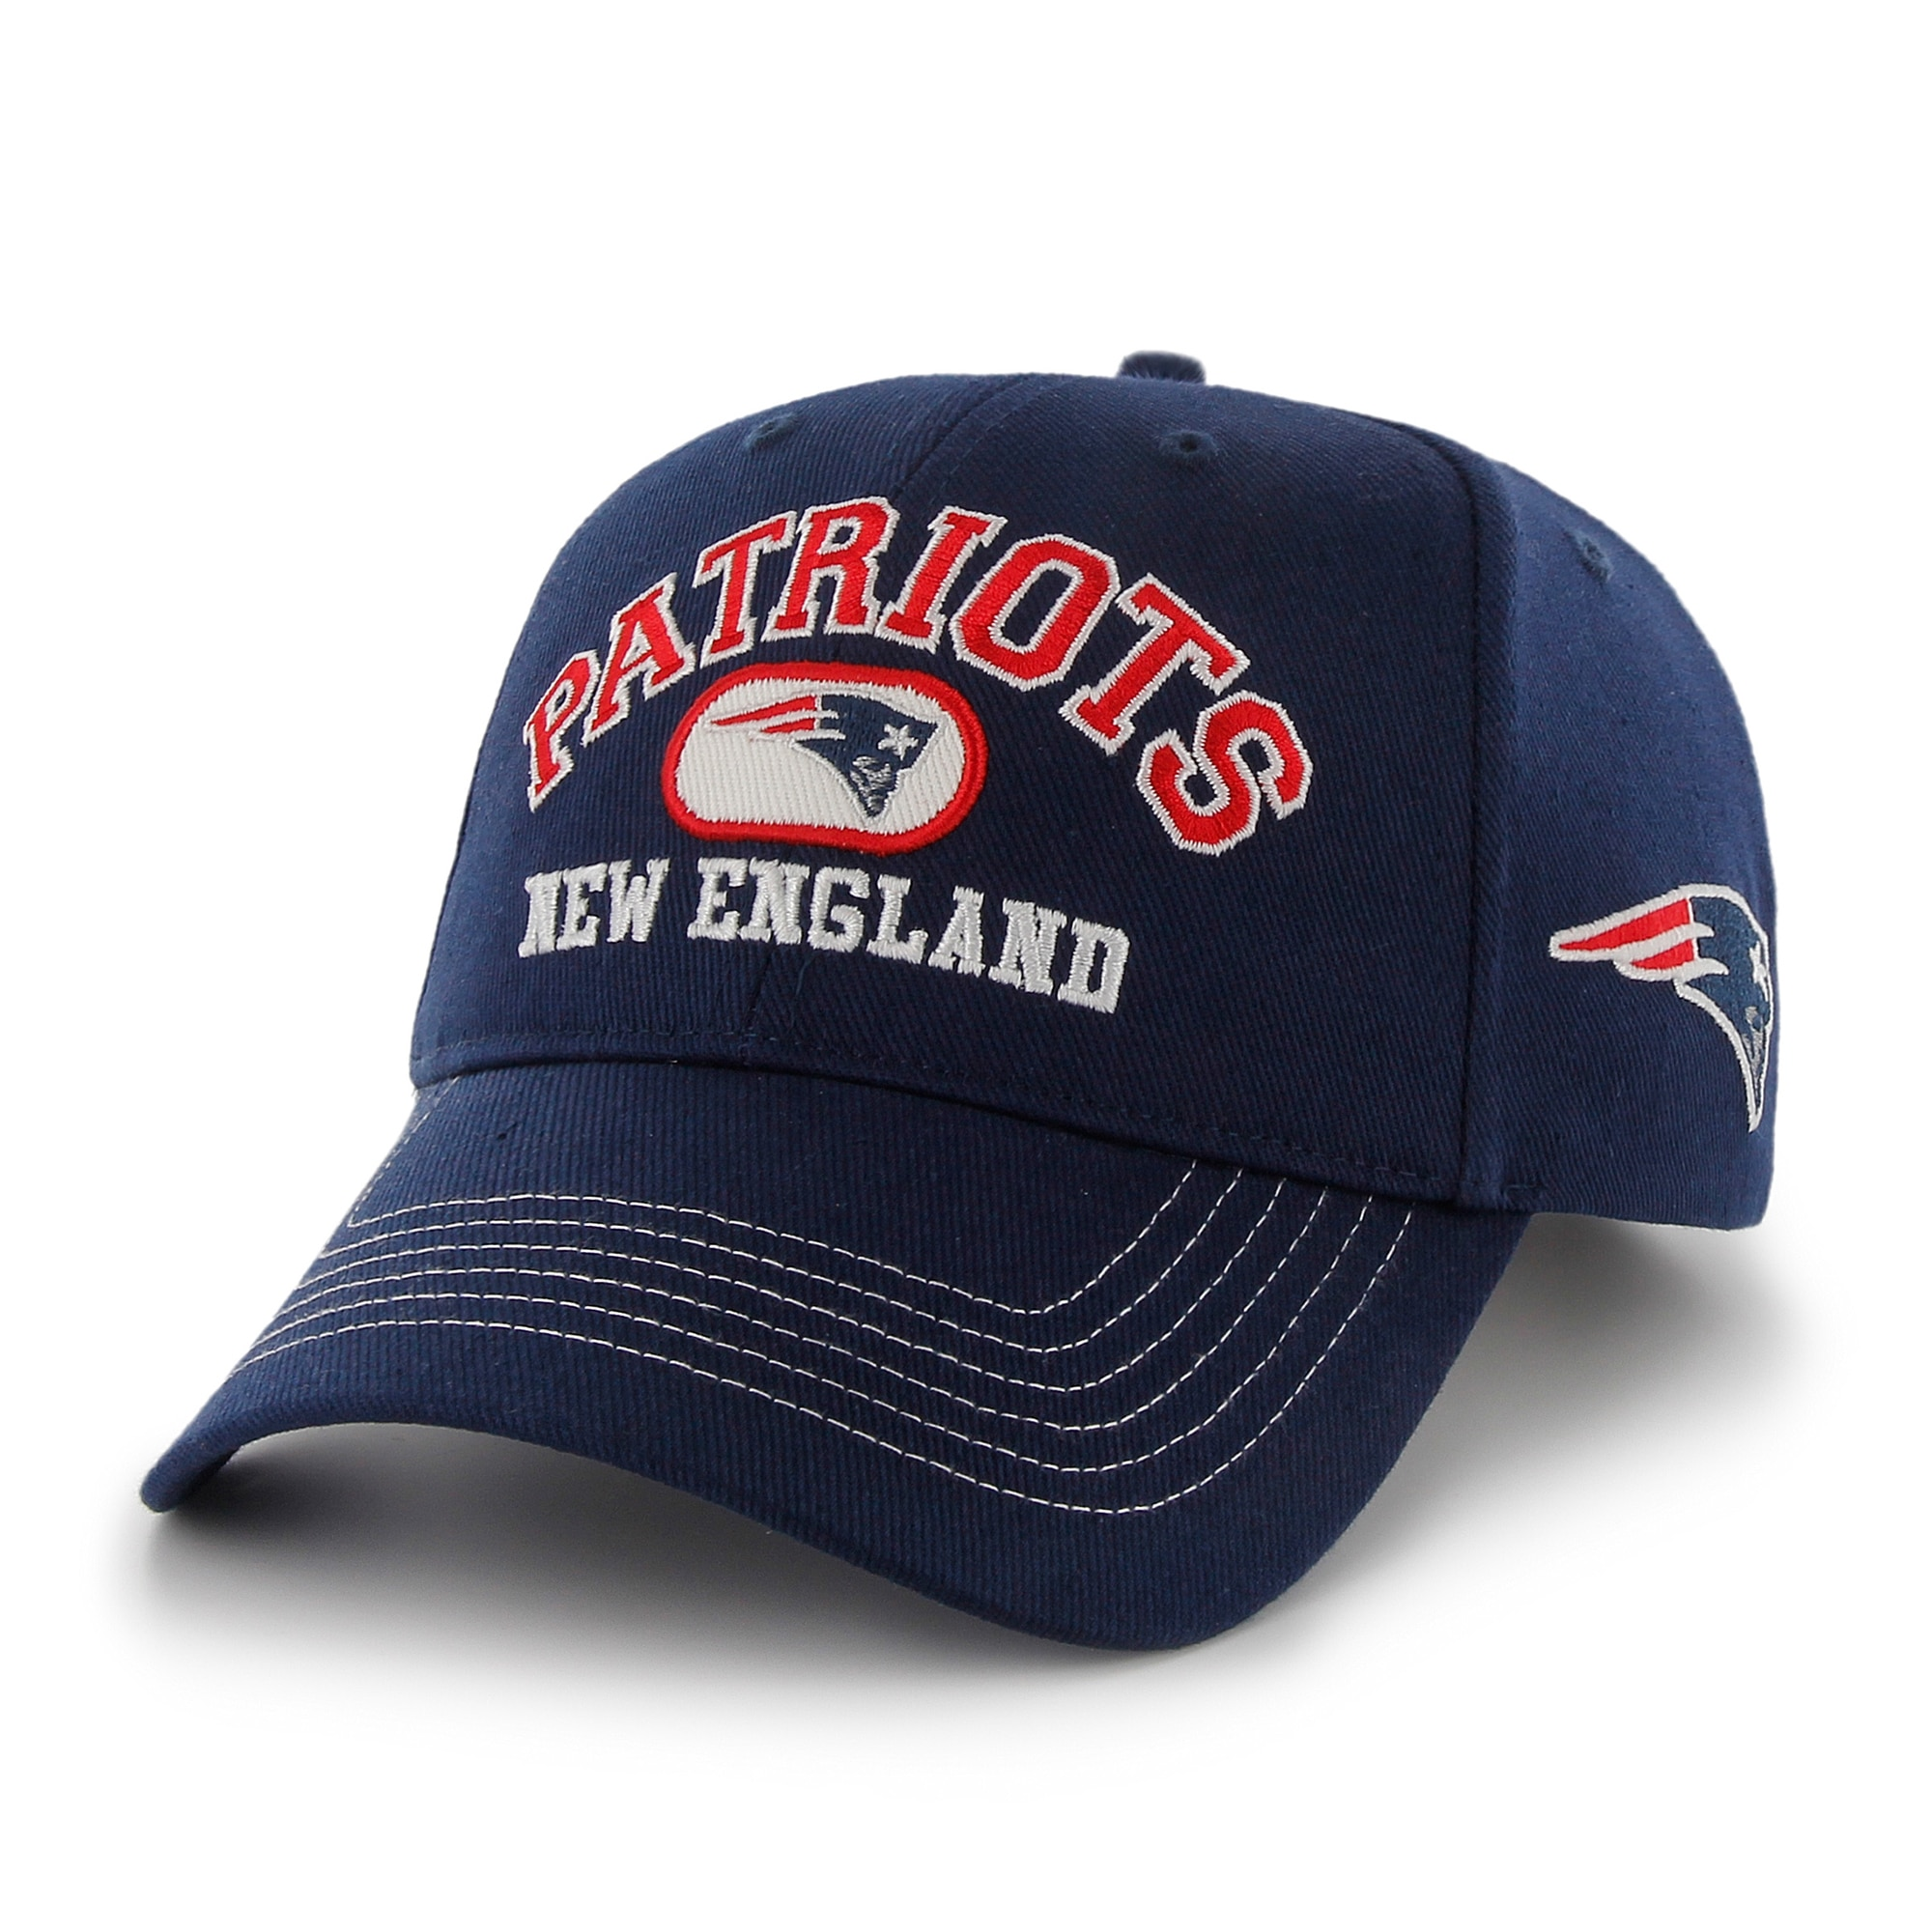 NFL New England Patriots Draft Cap / Hat by Fan Favorite